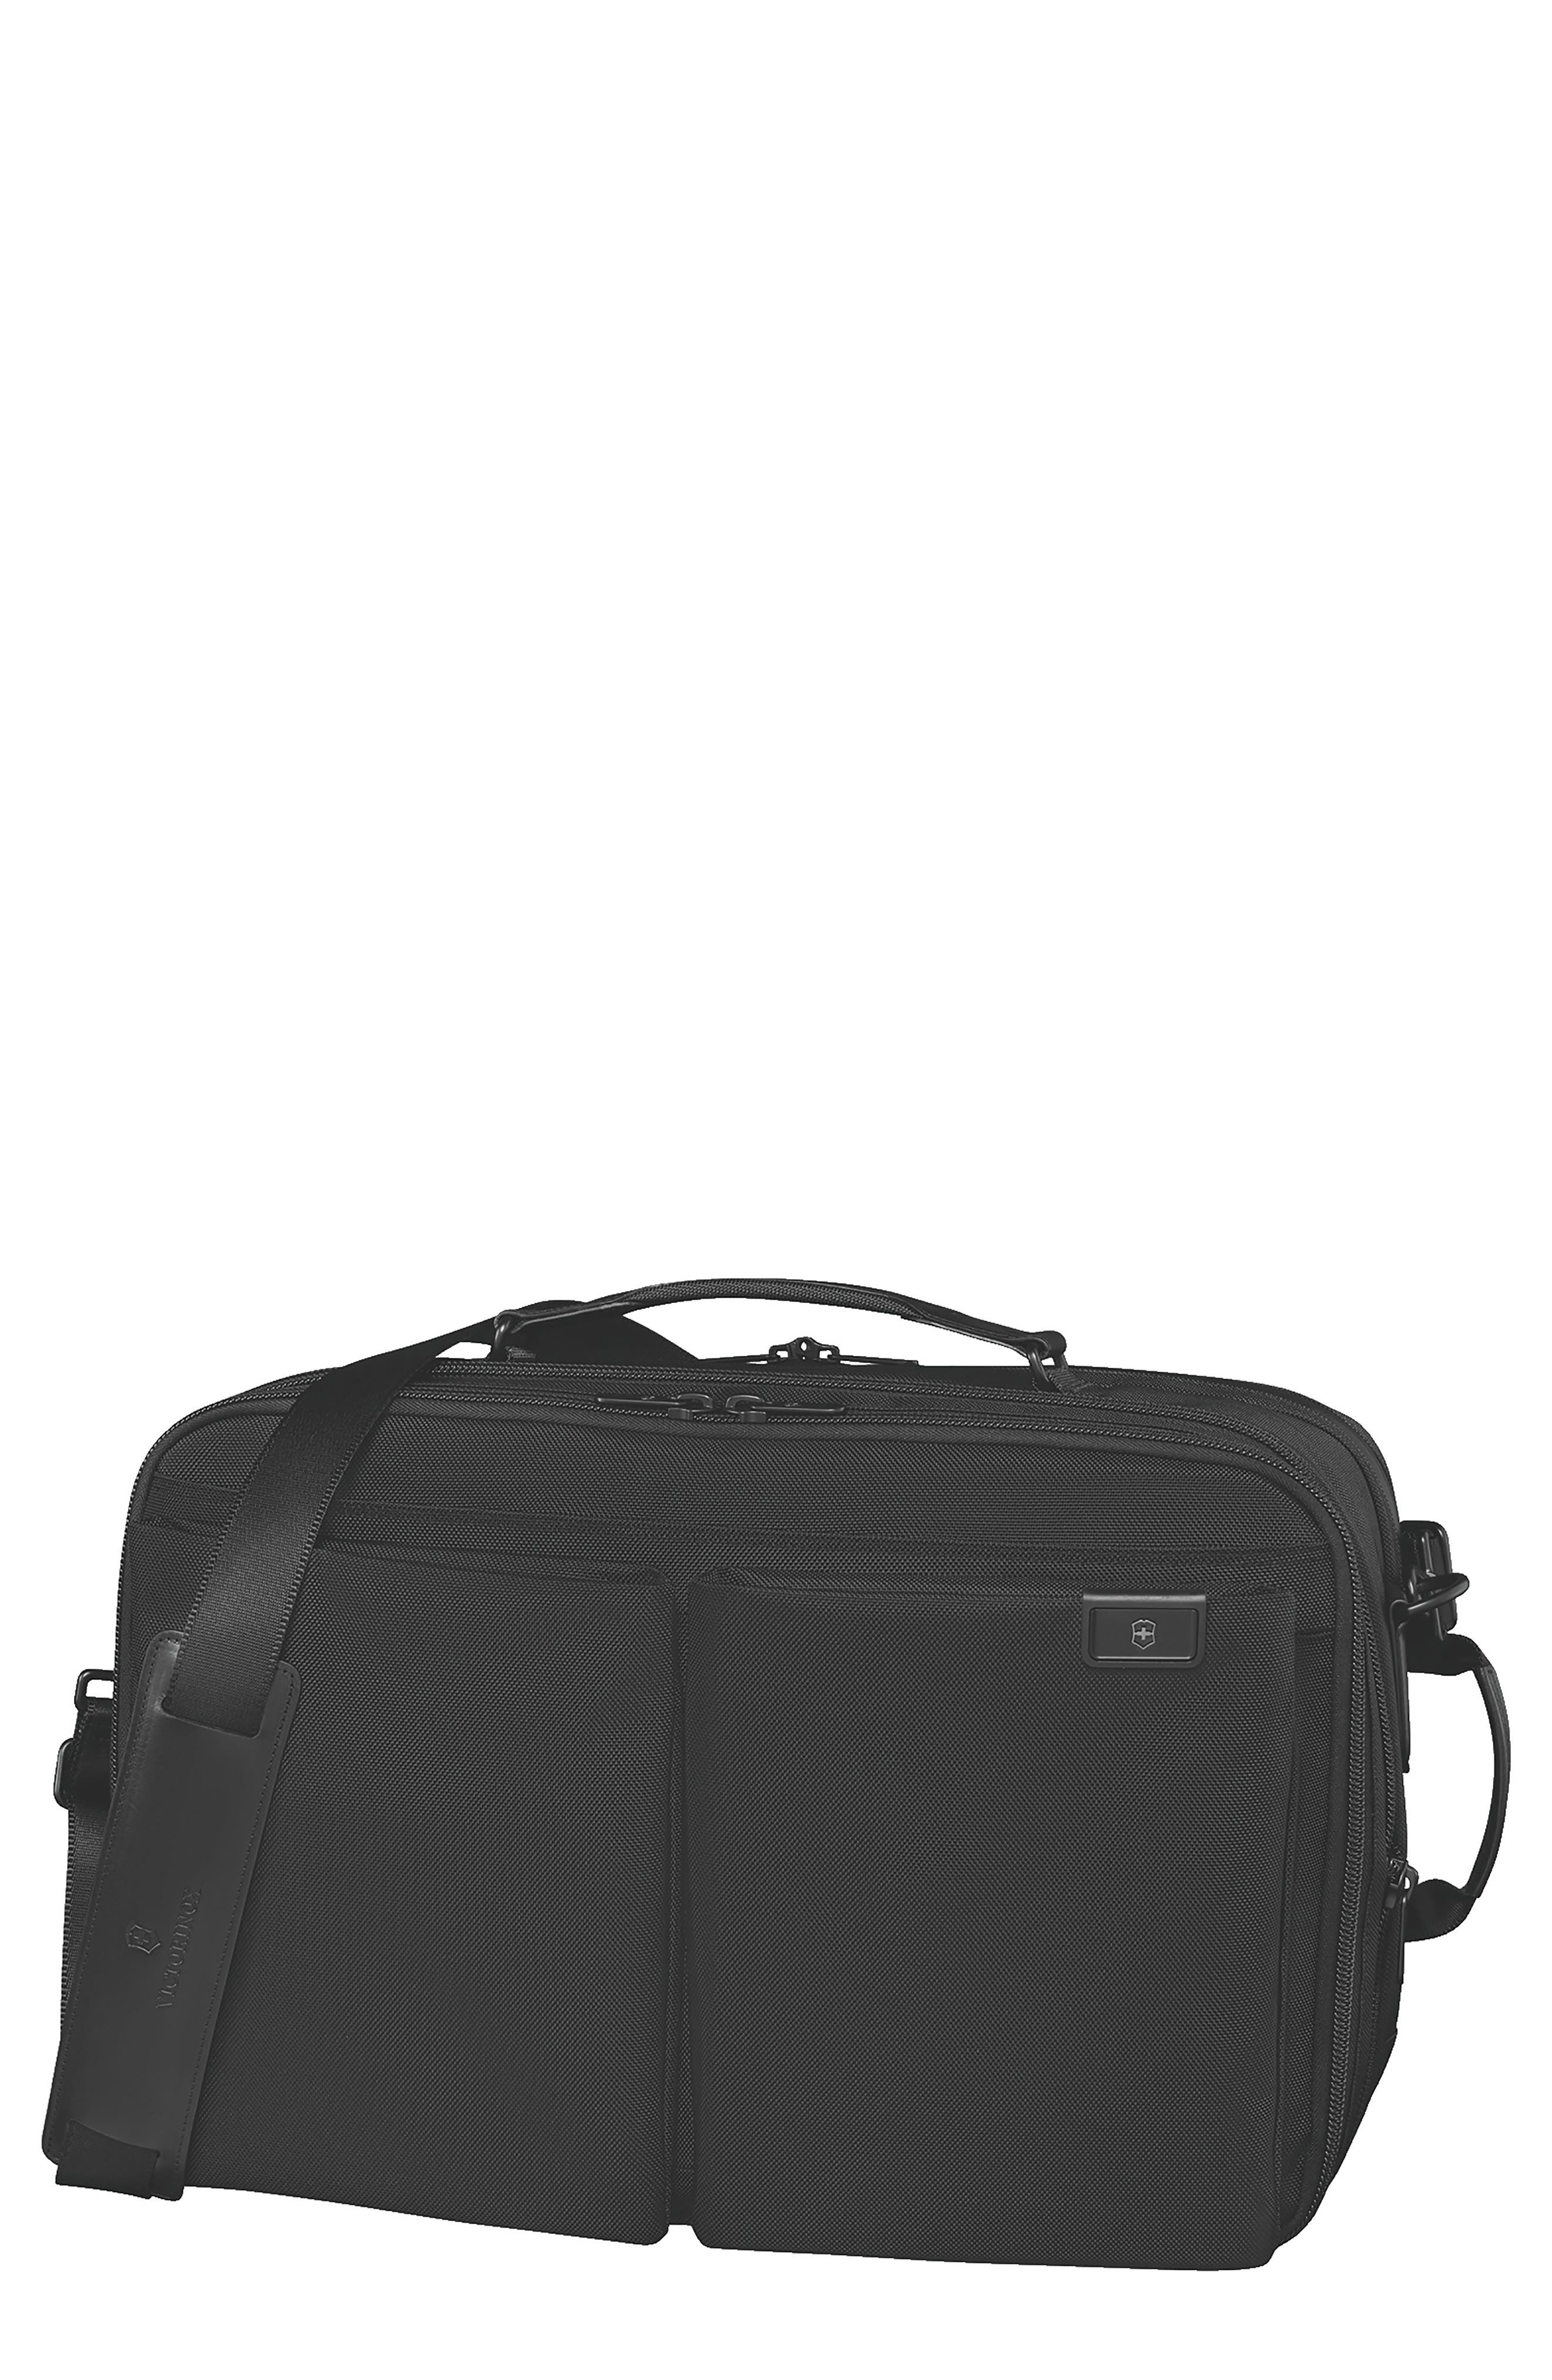 Alternate Image 1 Selected - Victorinox Swiss Army® Lexicon 2.0 Convertible Backpack